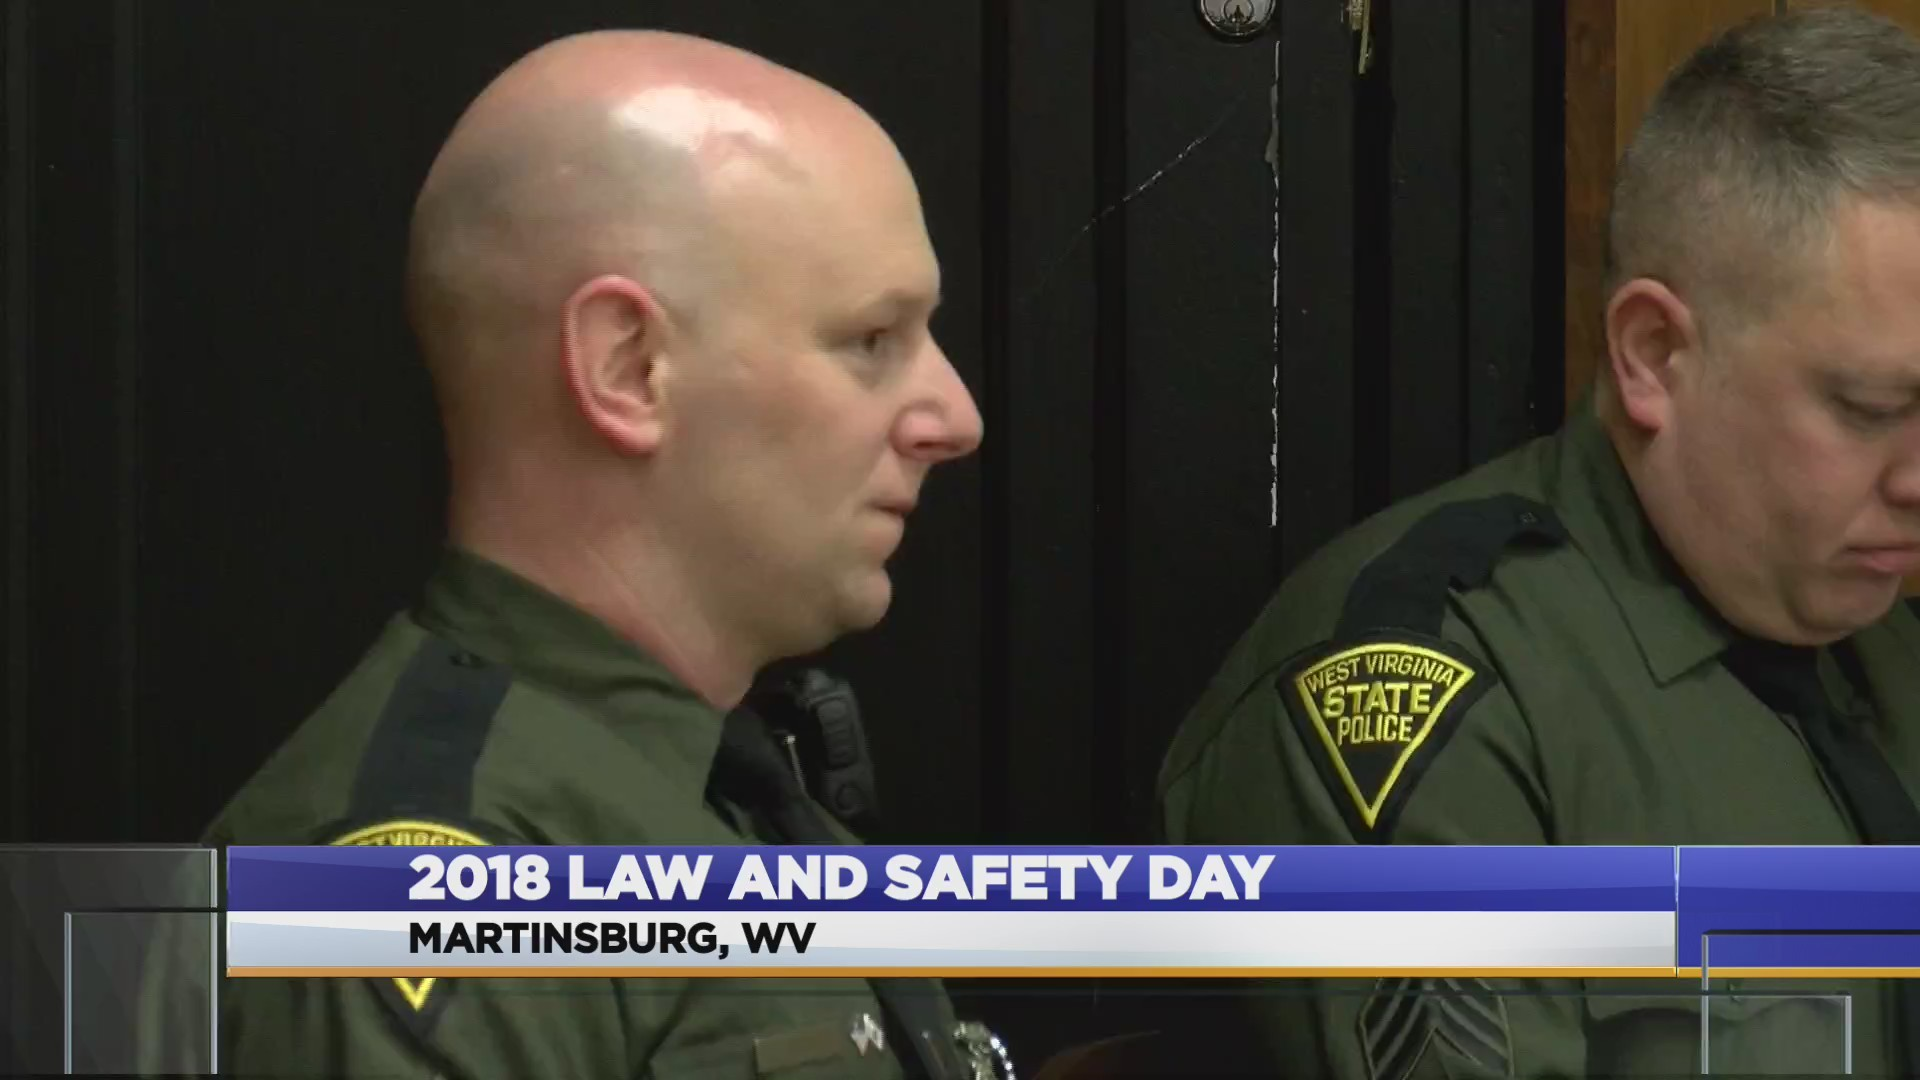 LAW AND SAFETY DAY